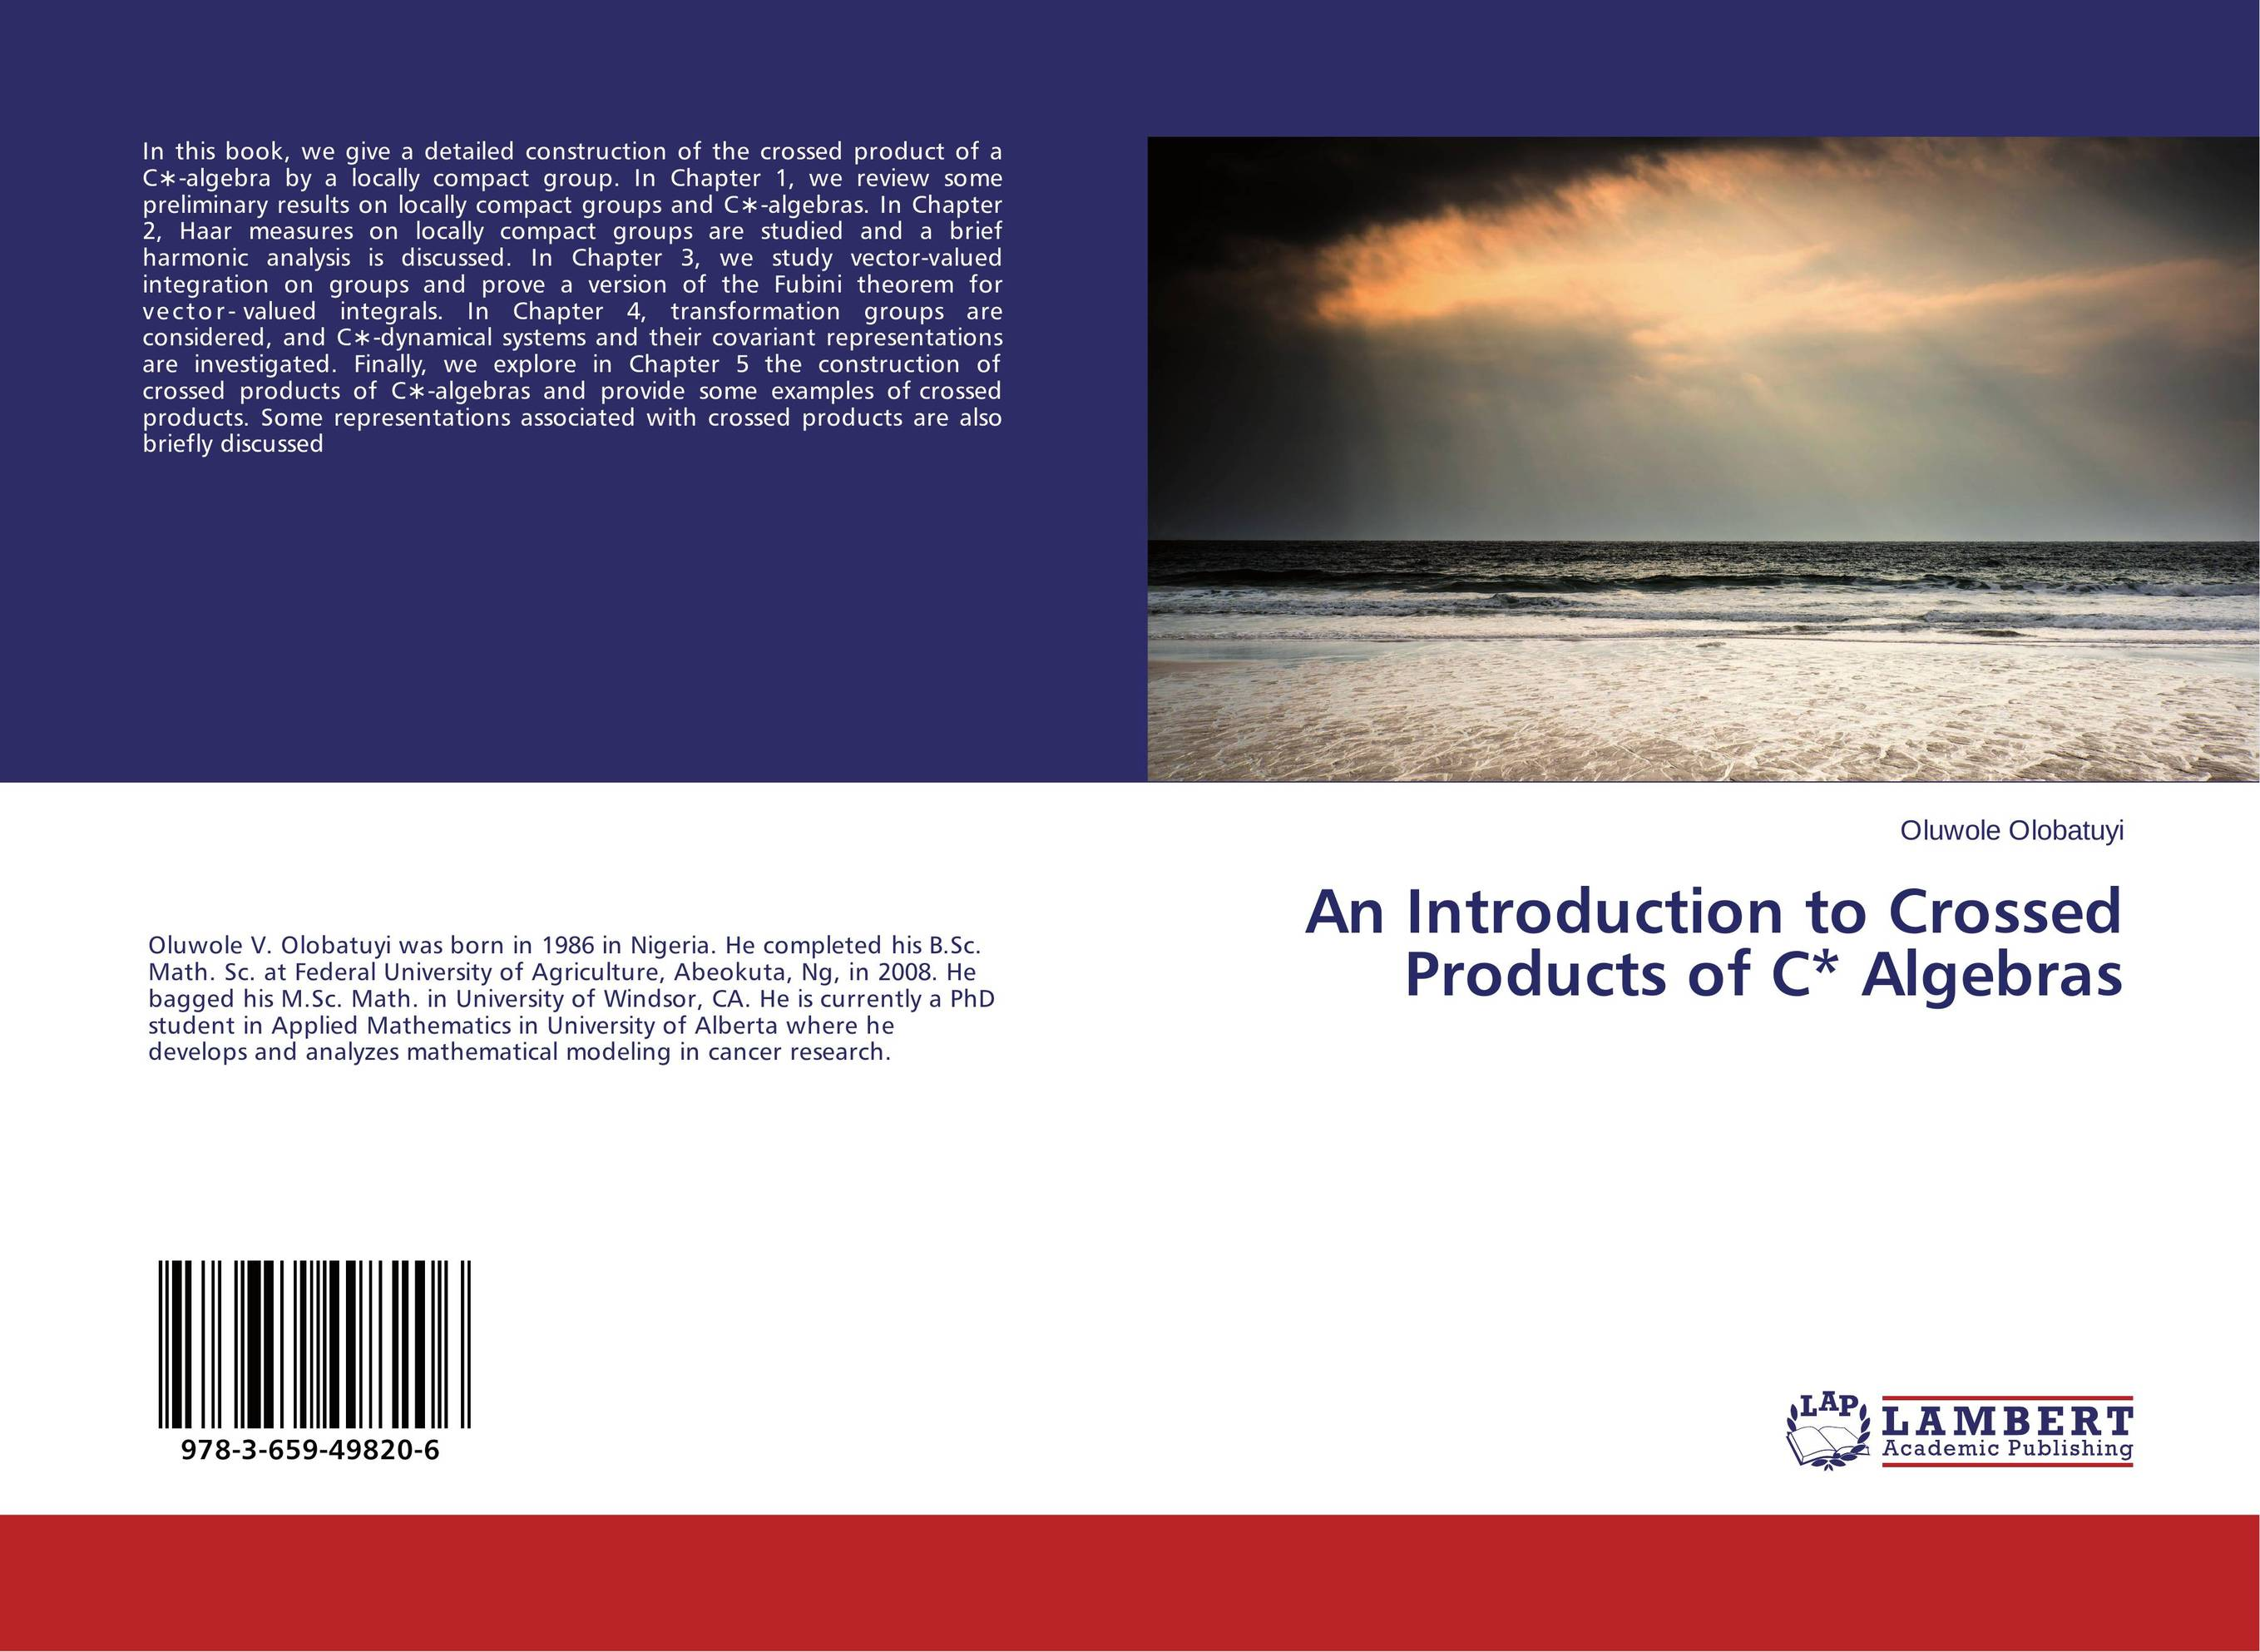 An Introduction to Crossed Products of C* Algebras module amenability of banach algebras